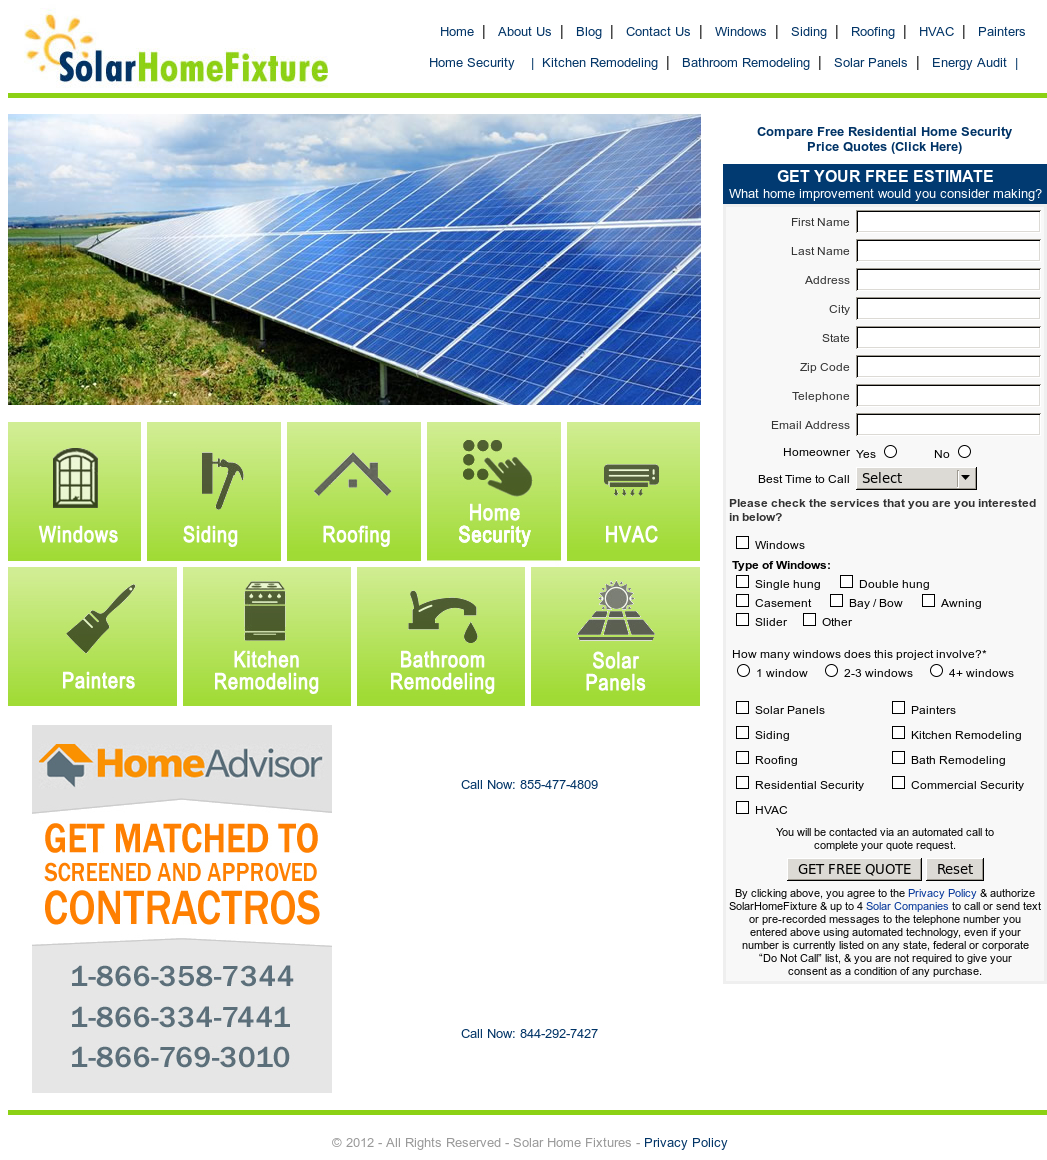 Solar Home Fixtures Competitors, Revenue and Employees - Owler